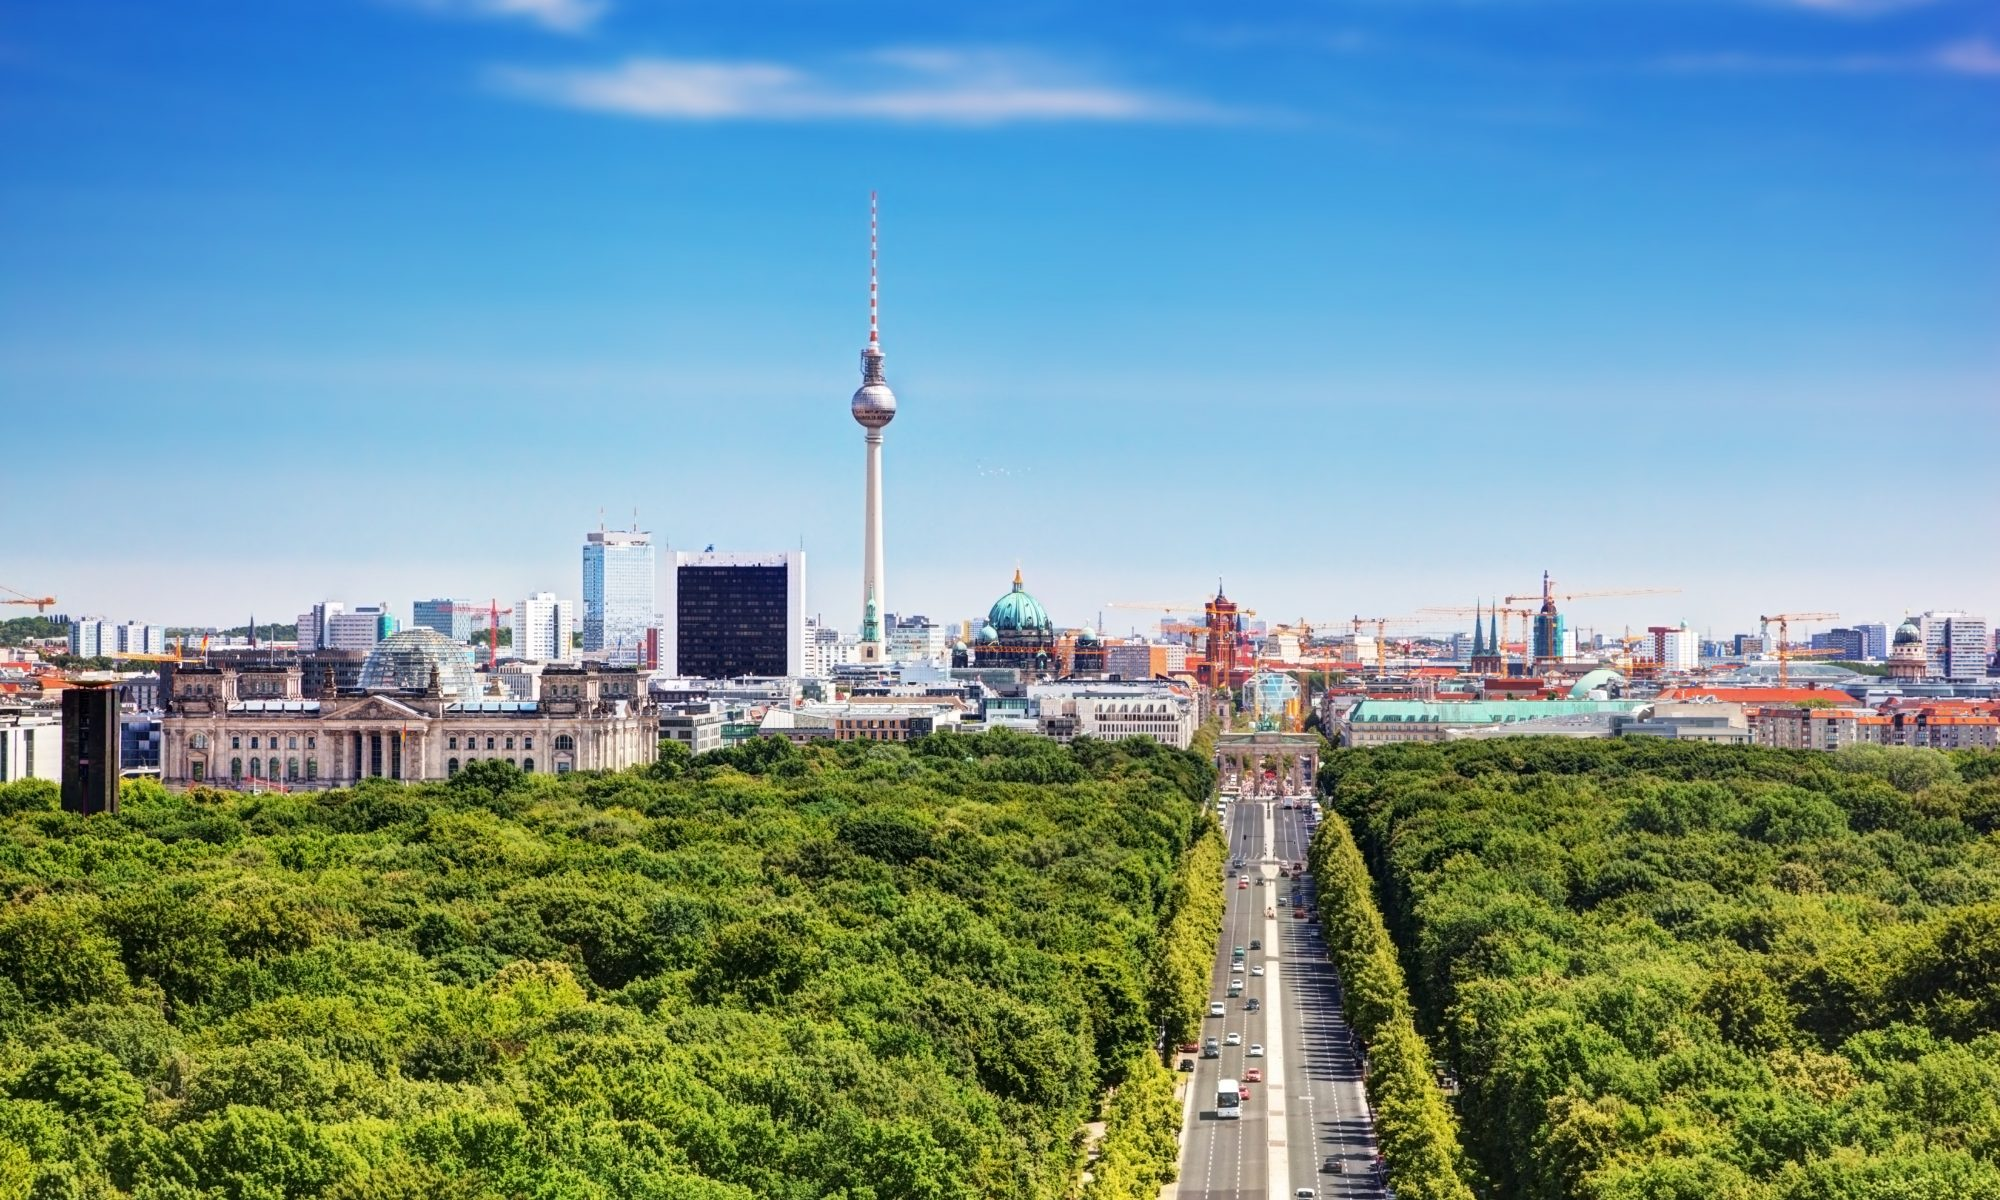 BCB Business Consulting Berlin - Tiergarten